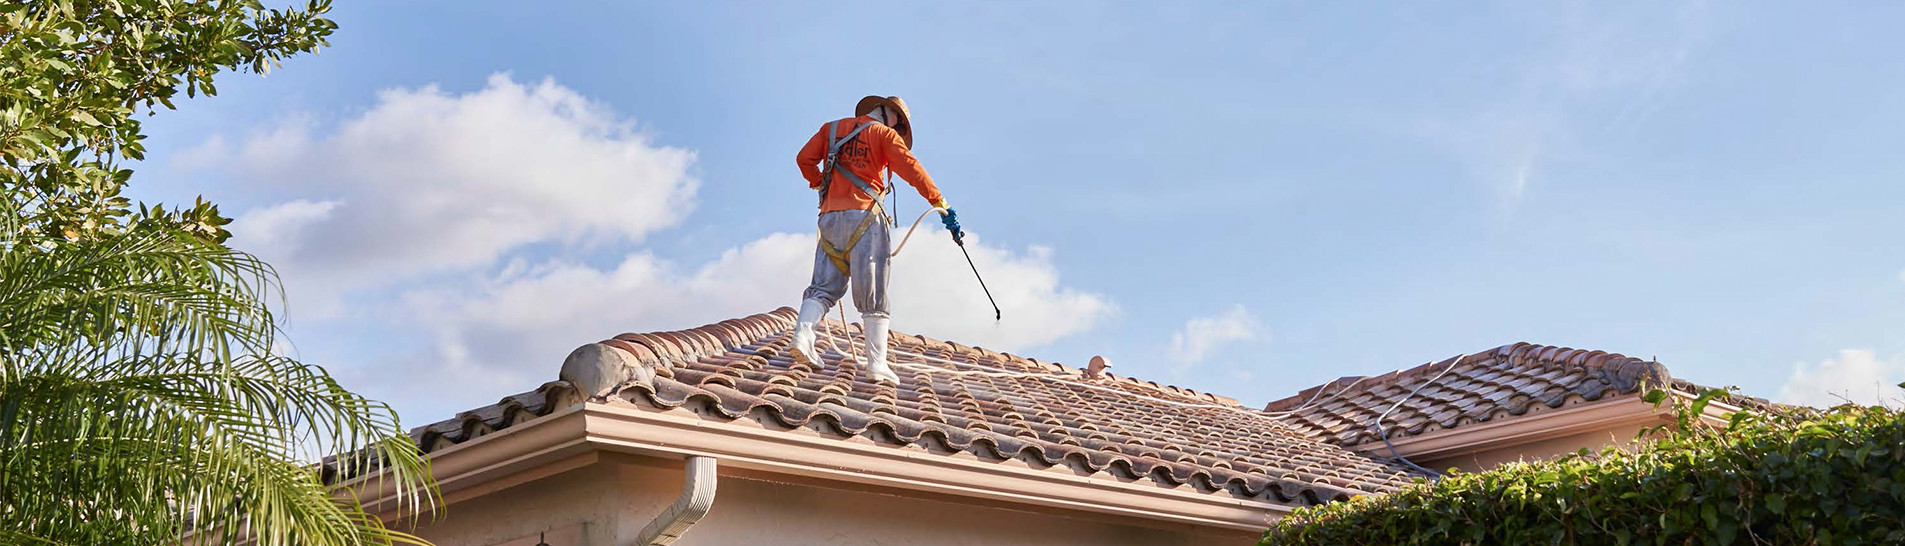 Exceptional How To Choose The Best Roof Cleaning Company For You